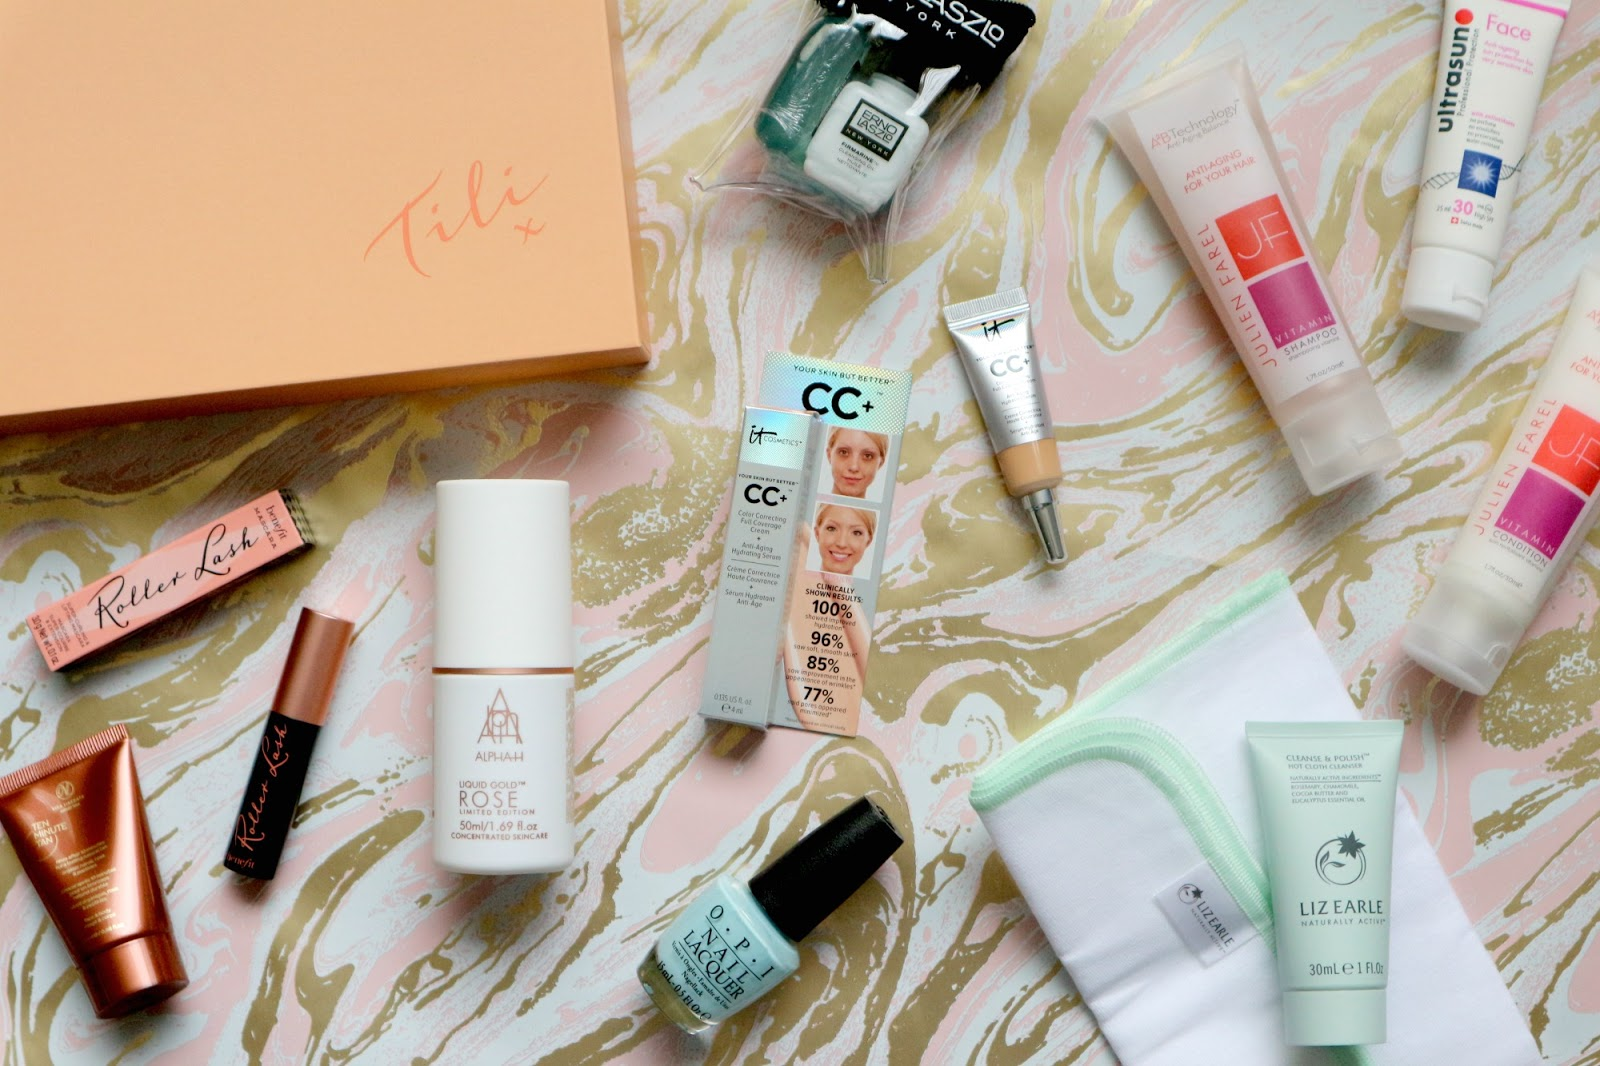 QVC Tili Box Review